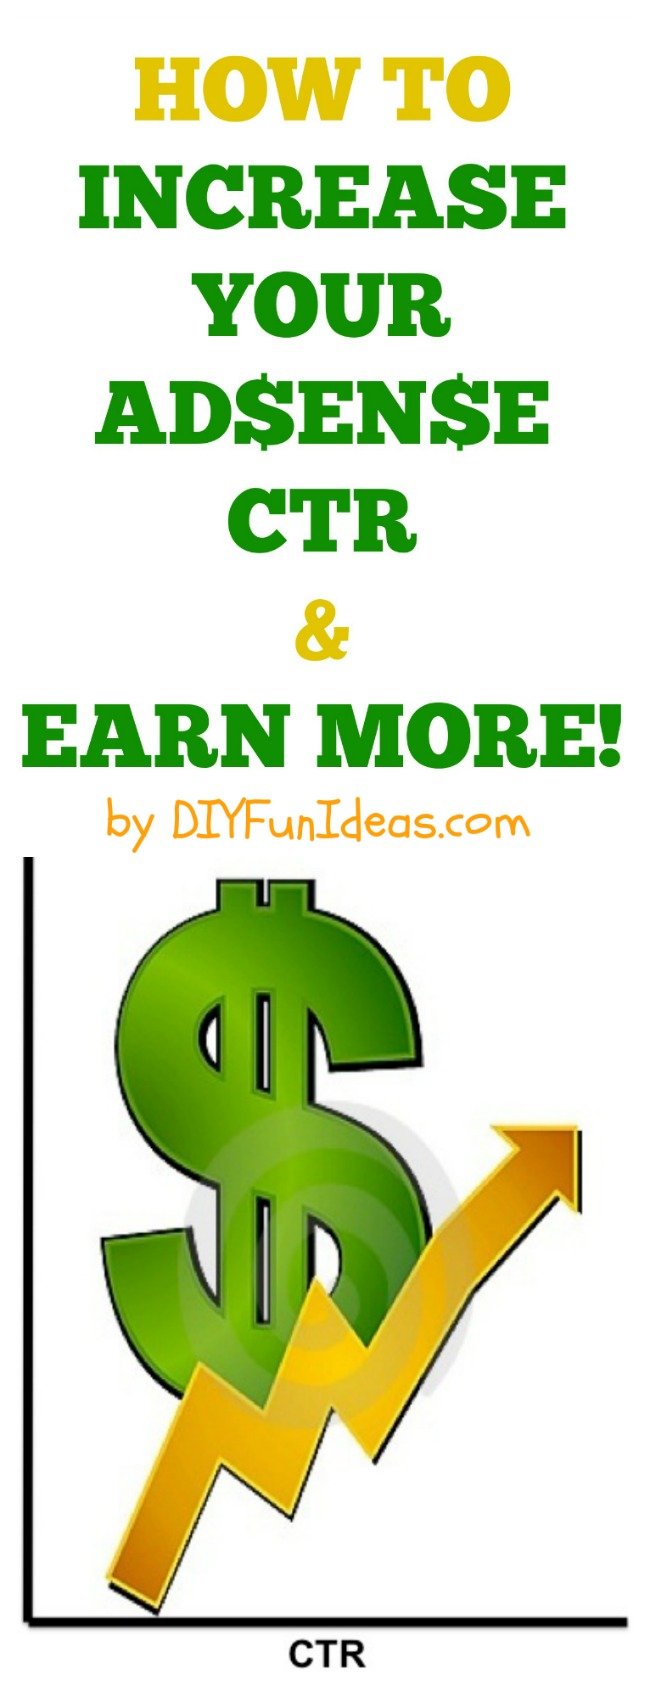 HOW TO INCREASE YOUR ADSENSE CTR AND EARN MORE